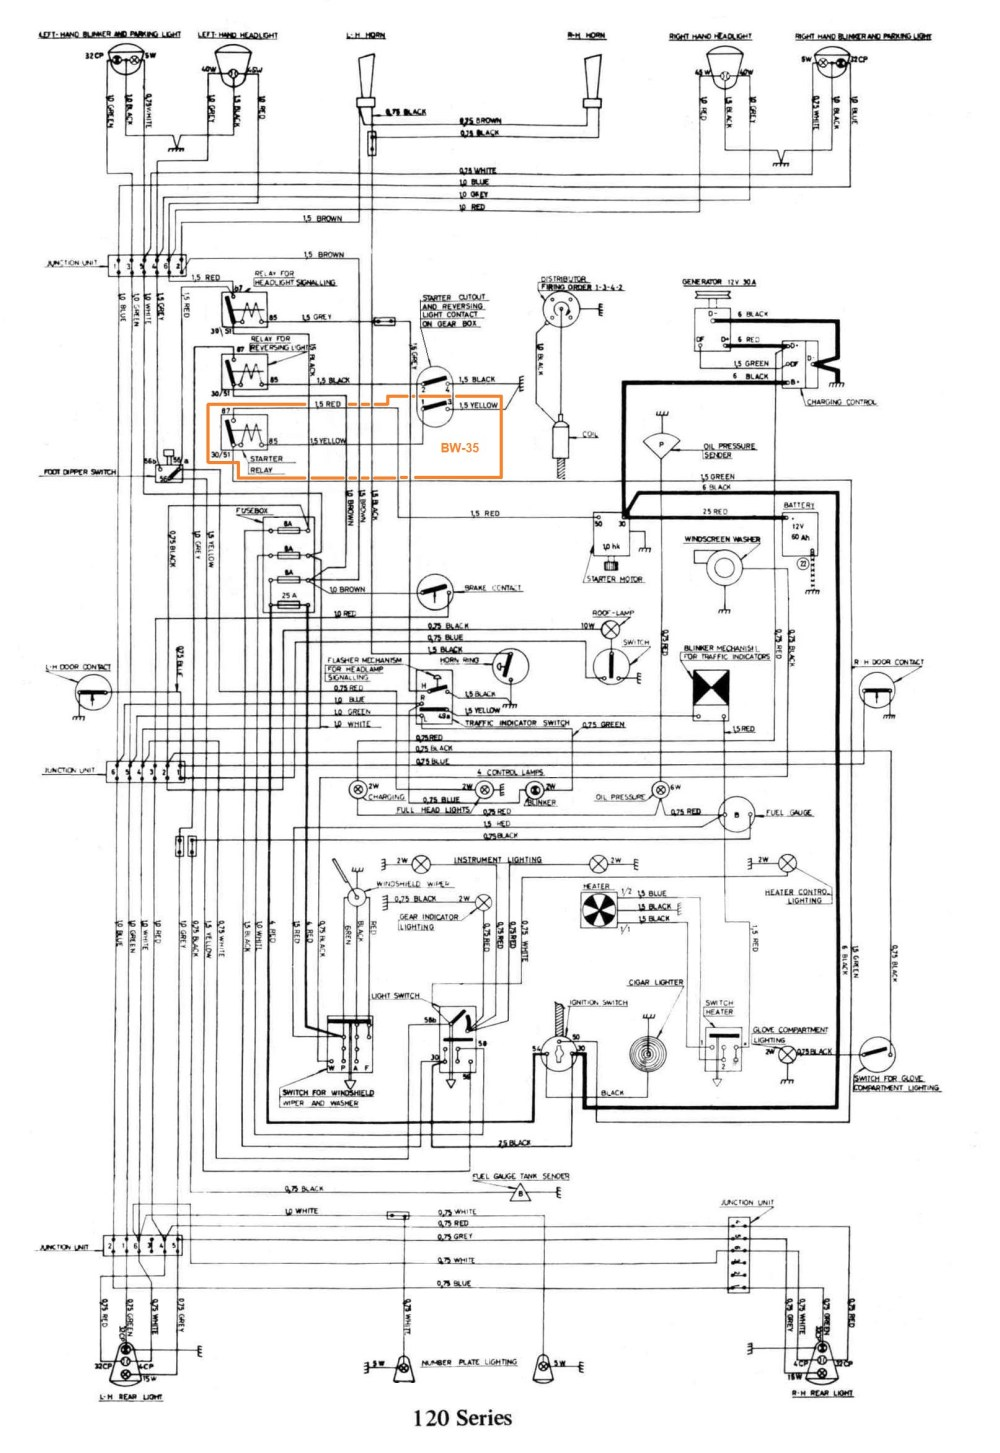 medium resolution of wiring diagram volvo v70 2000 wiring diagram name volvo v70 2004 electrical diagram 2000 volvo v70